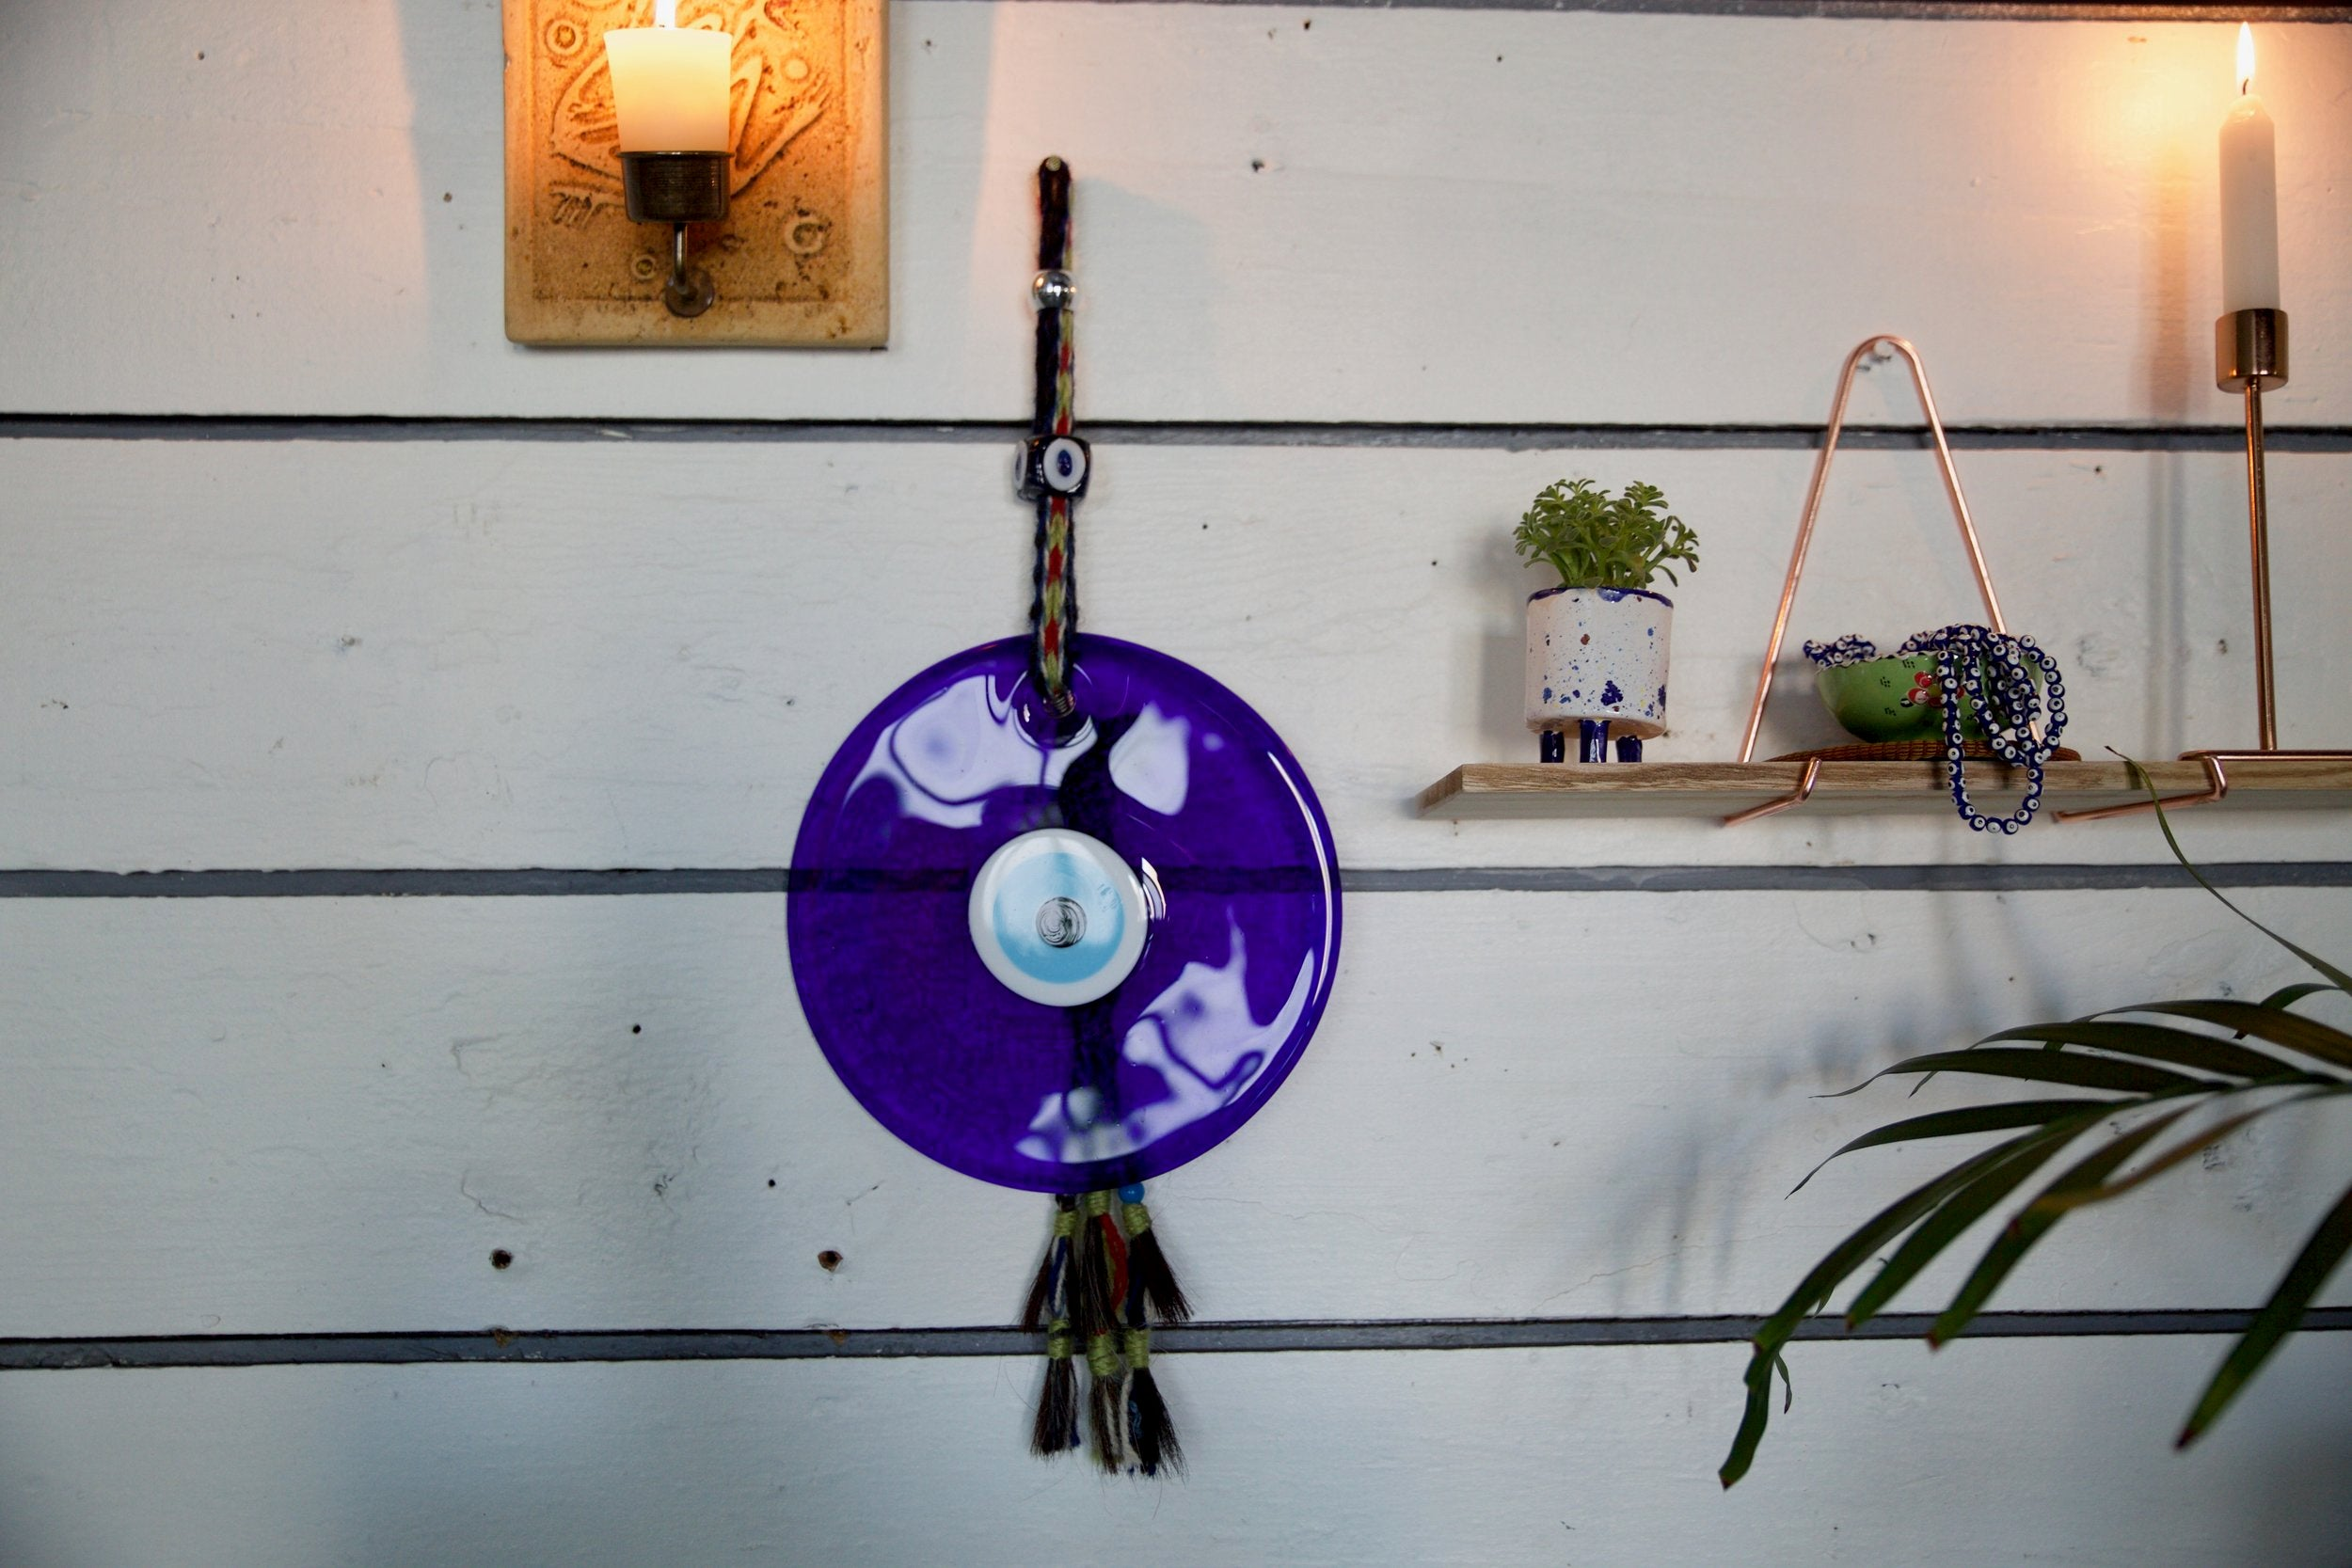 glass-evil-eye-protection-wall-hanging-decoration-1